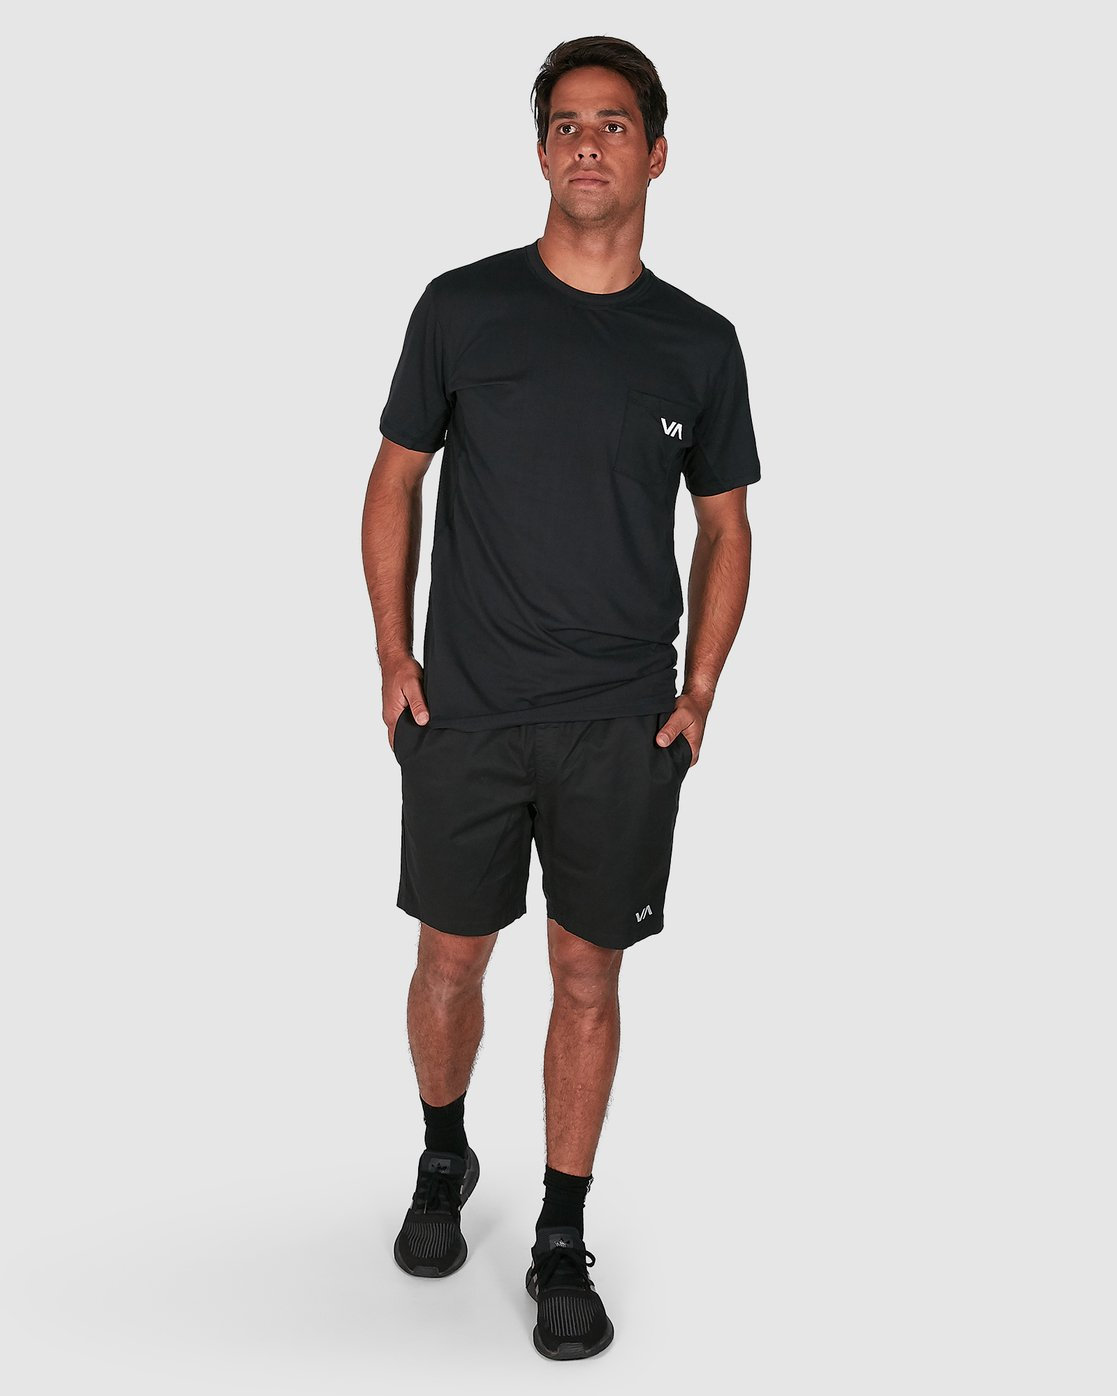 13 SPECTRUM SHORTS Black R107311 RVCA